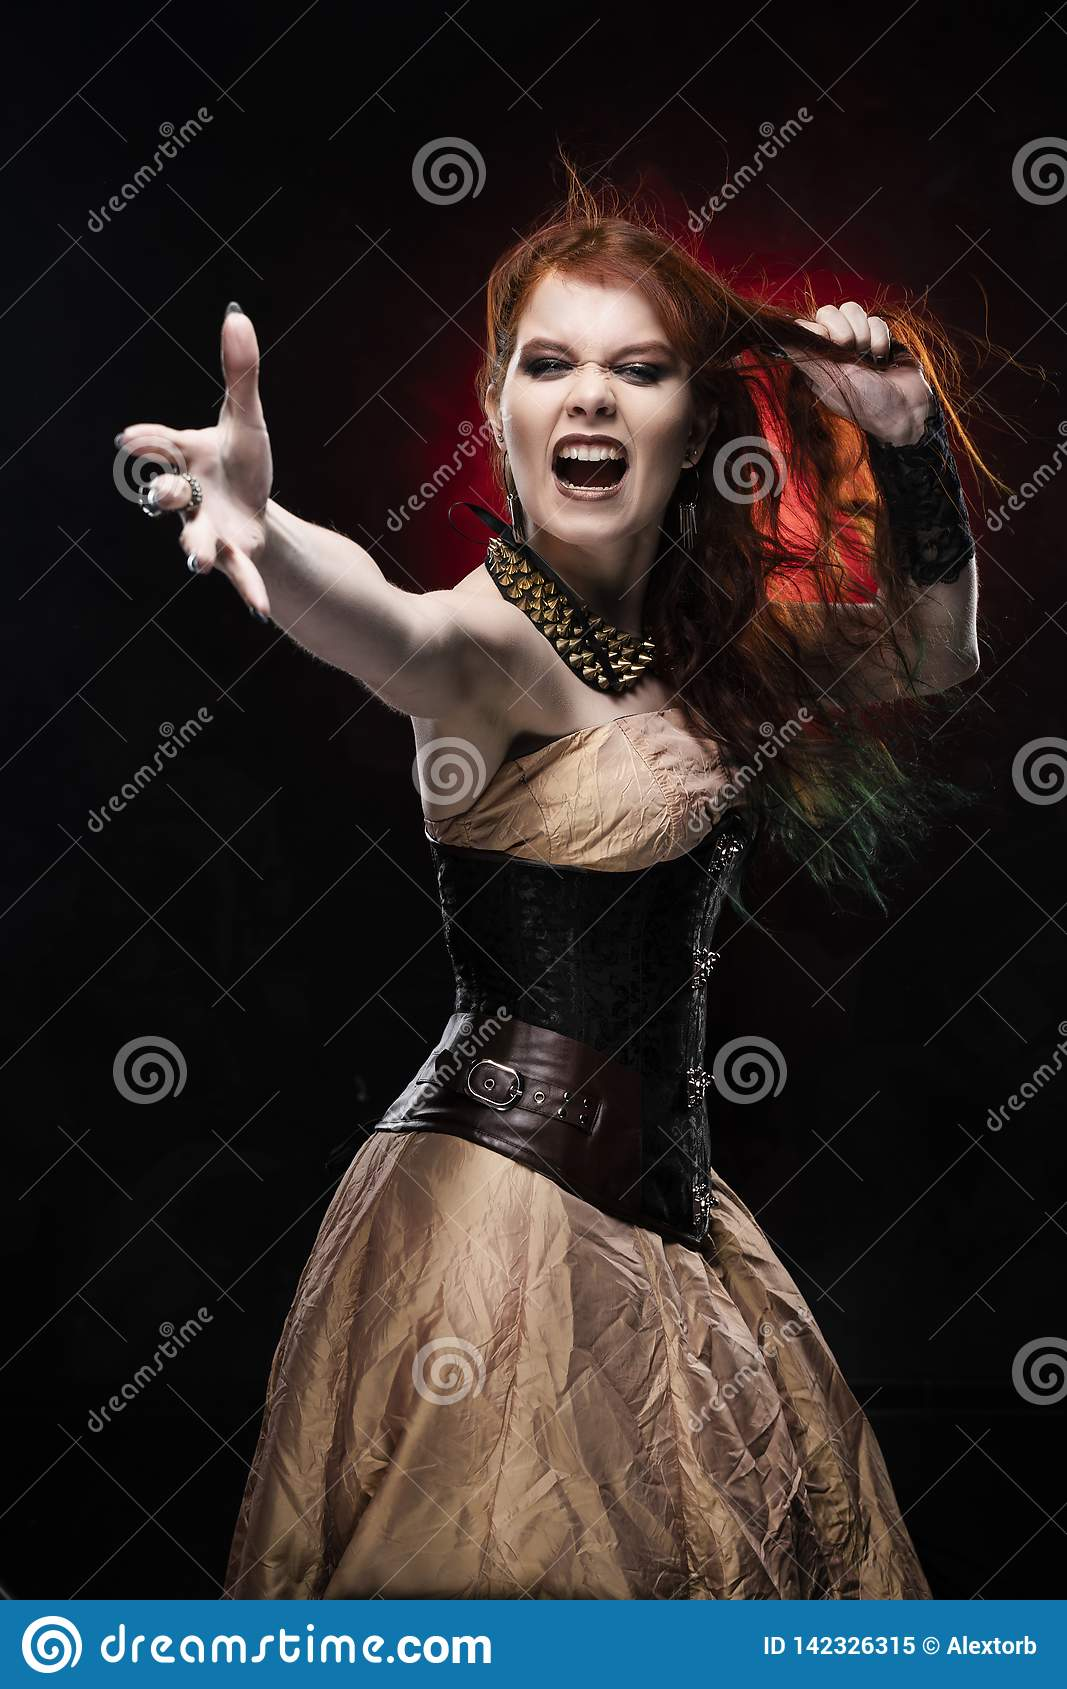 Beautiful redhead cosplayer girl wearing Victorian-style steampunk dress screams, pulls her hair by her hand and outstretching her